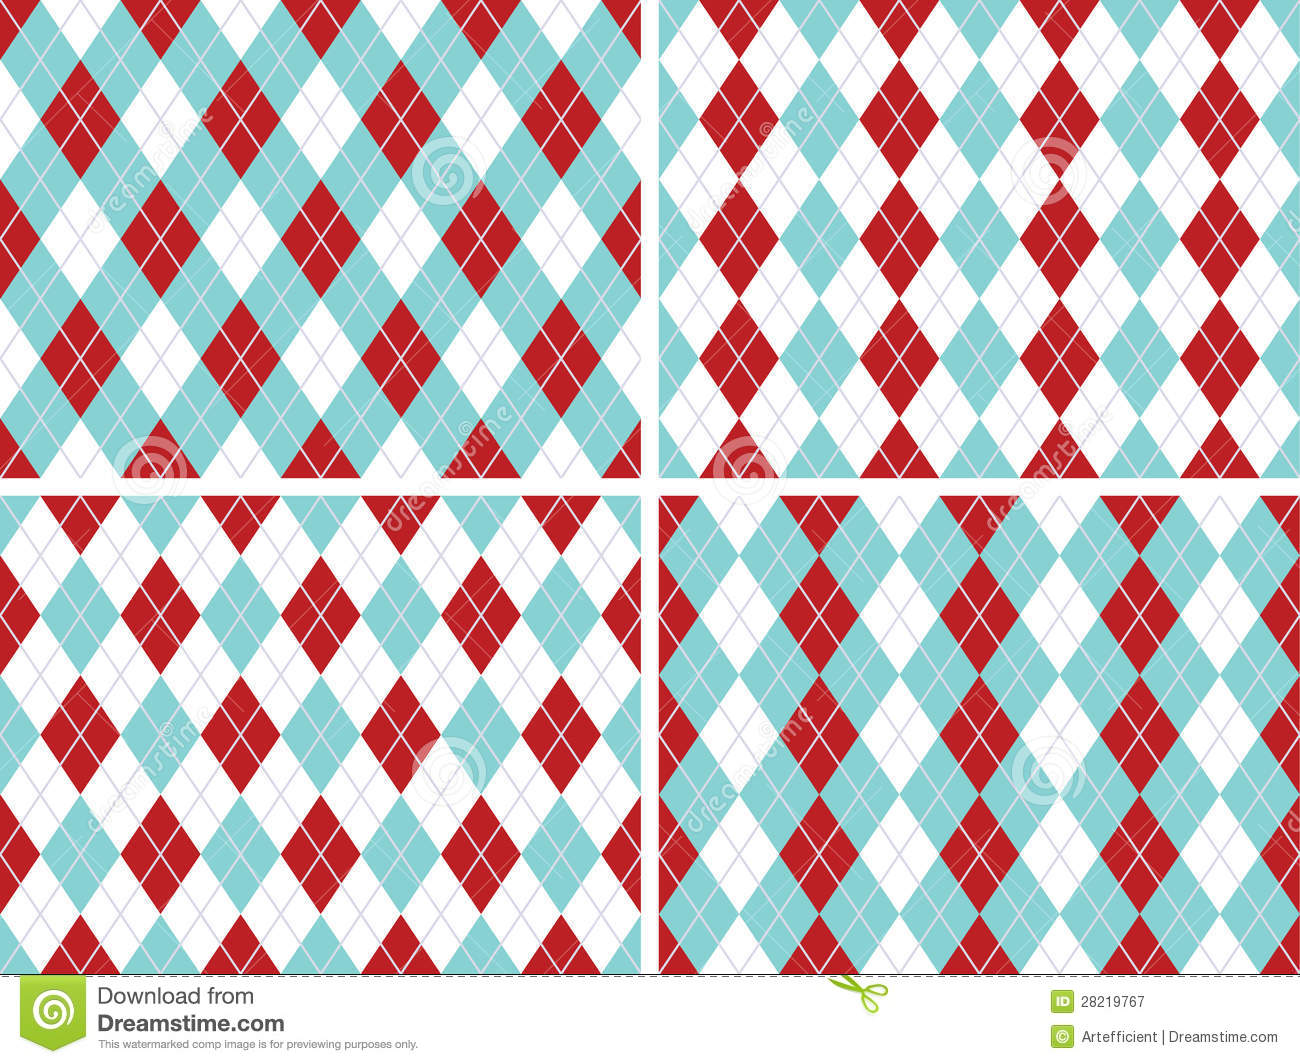 Seamless Argyle Patterns Aqua Blue, Red With Solid Silver